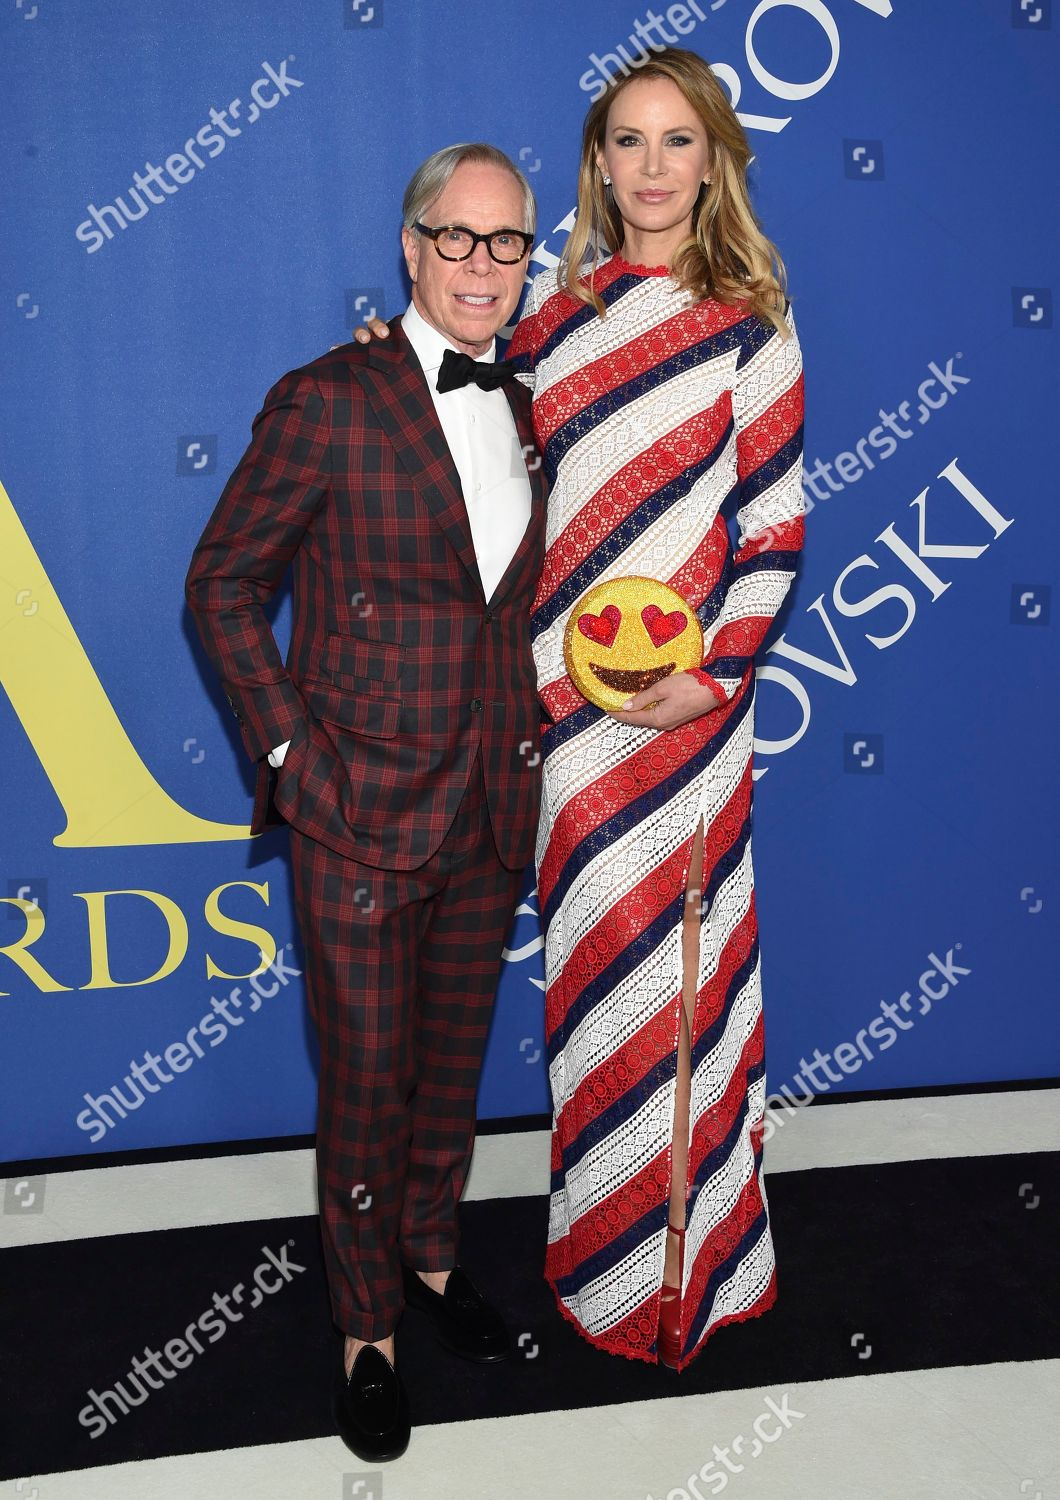 848cb6af 2018 CFDA Fashion Awards - Arrivals, New York, USA Stock Image by Evan  Agostini for editorial use, Jun 4, 2018